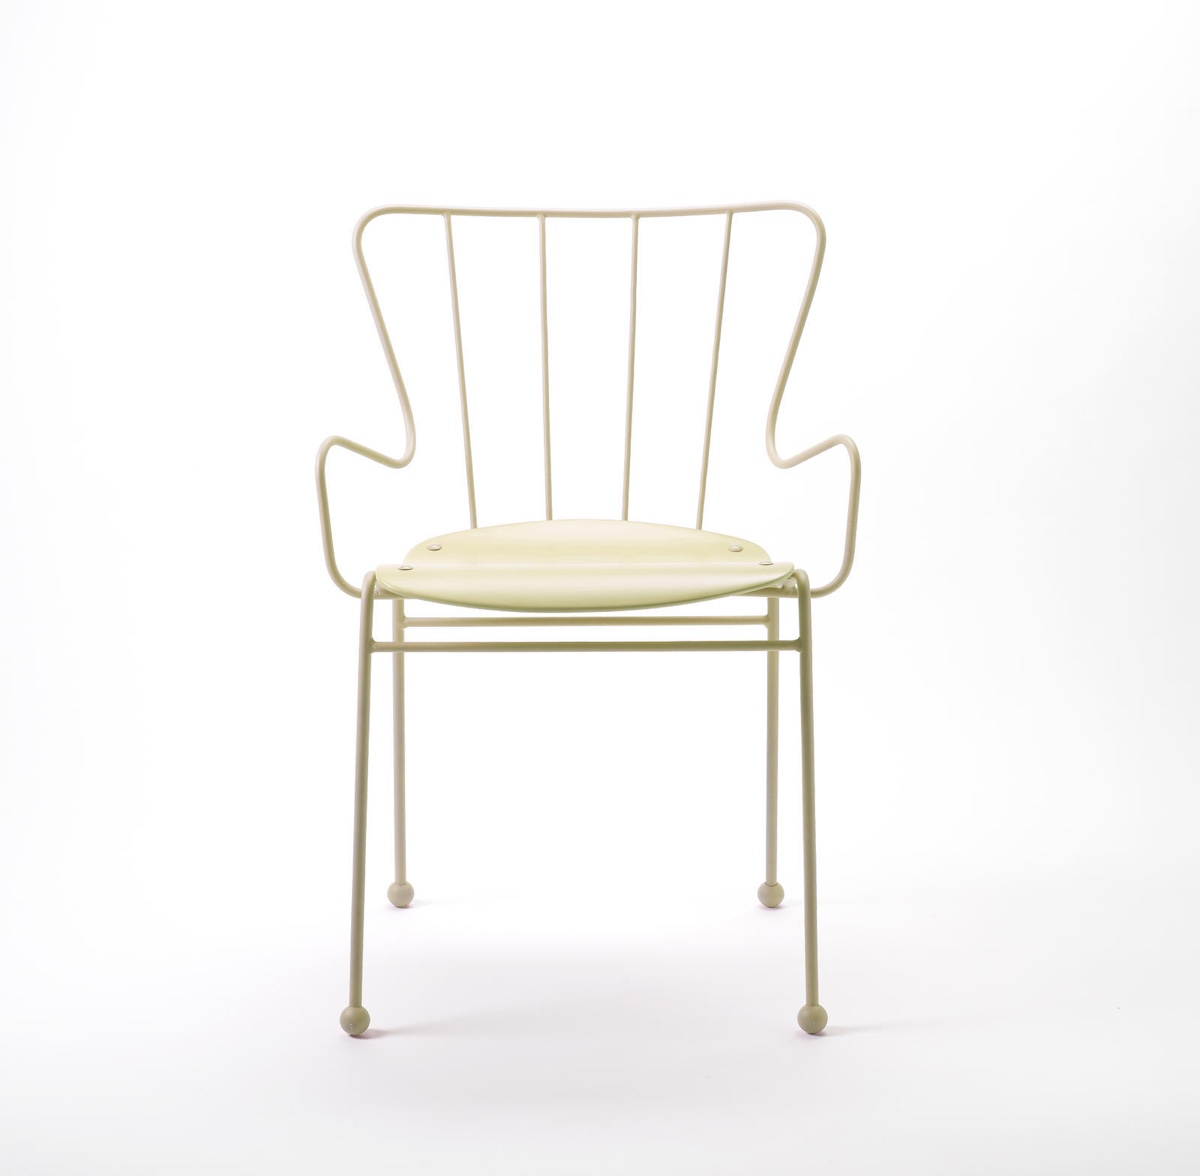 Antelope chair in white.